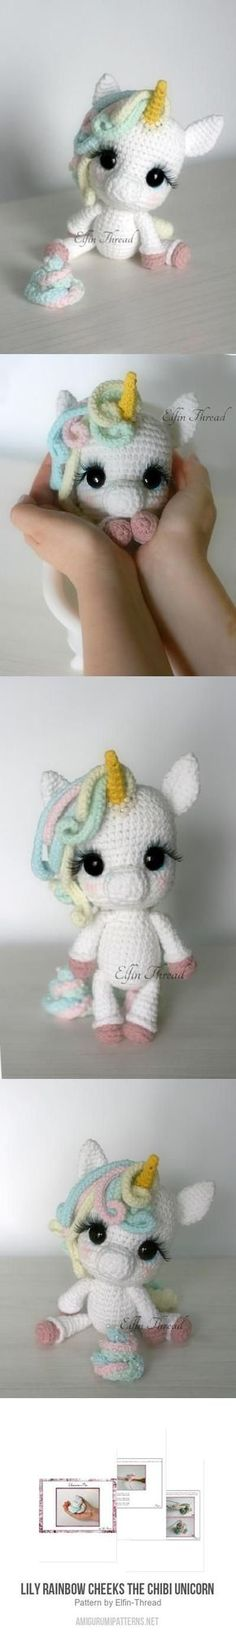 Crochet - amigurumi Lily Rainbow Cheeks the Chibi Unicorn amigurumi pattern Crochet Diy, Crochet Amigurumi, Amigurumi Patterns, Crochet Crafts, Crochet Dolls, Yarn Crafts, Knitting Patterns, Crochet Patterns, Yarn Projects